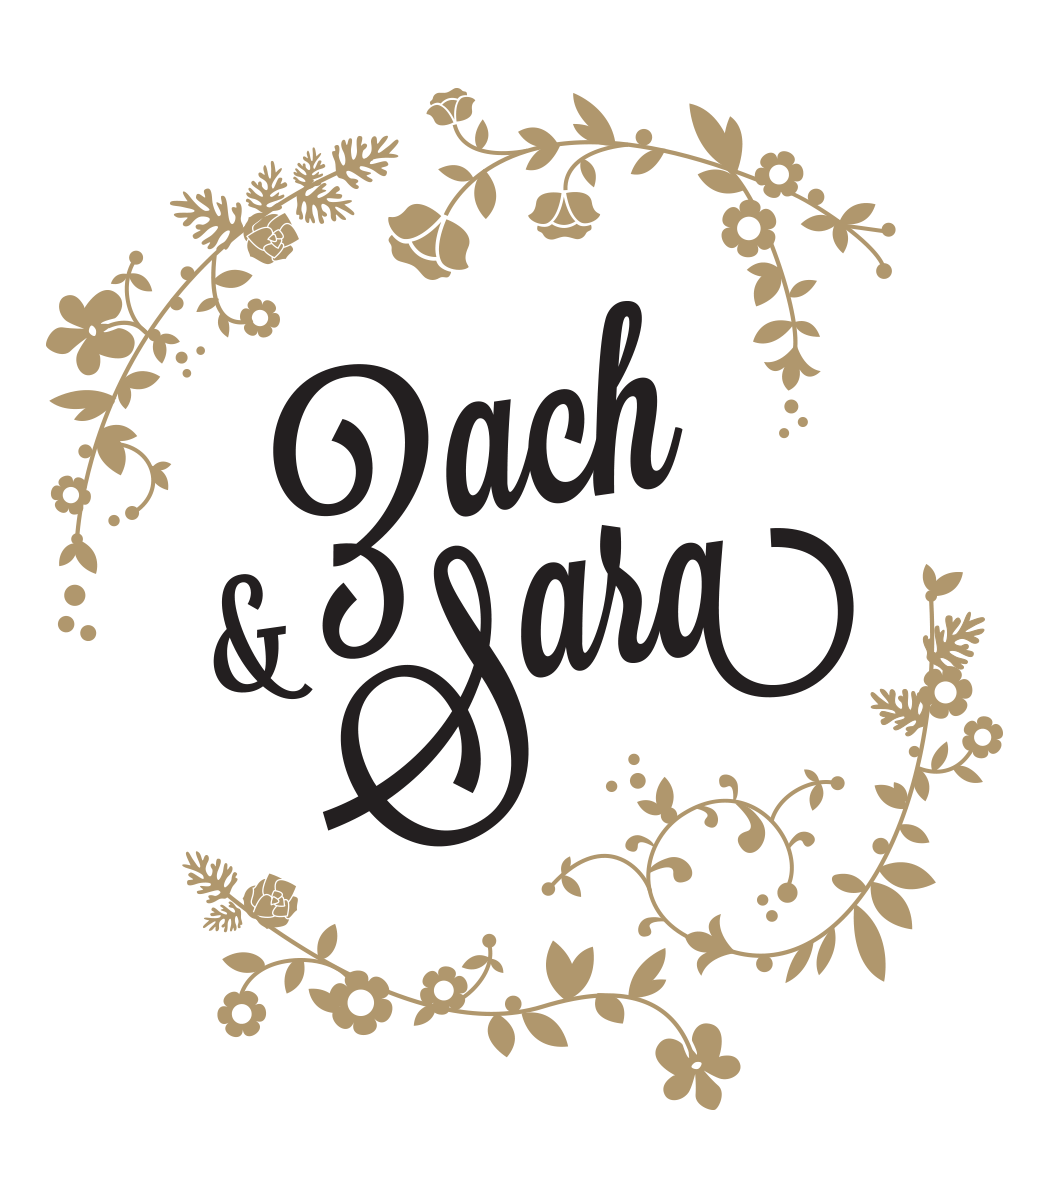 Z + S wedding rsvp logo design